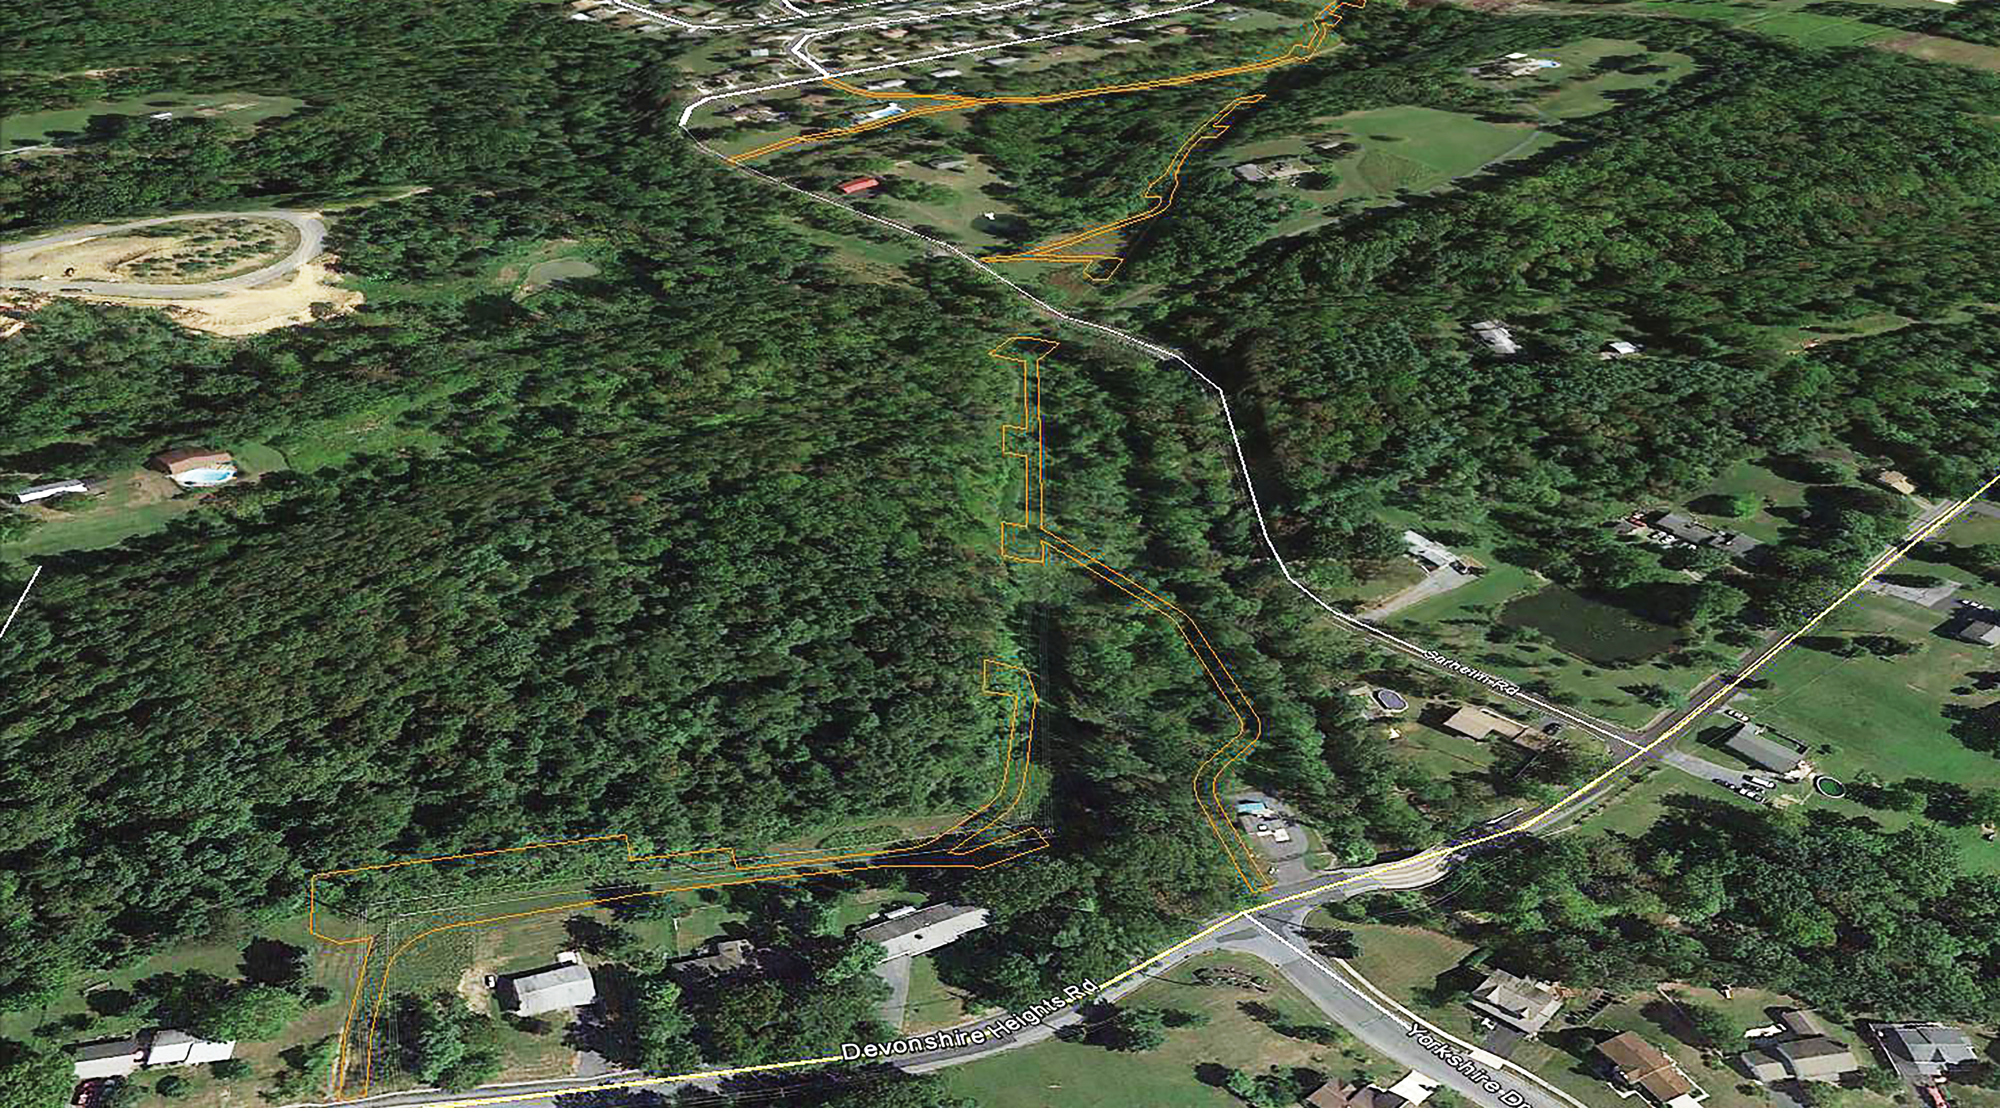 Birds-eye view and specs of a Woodland Design property